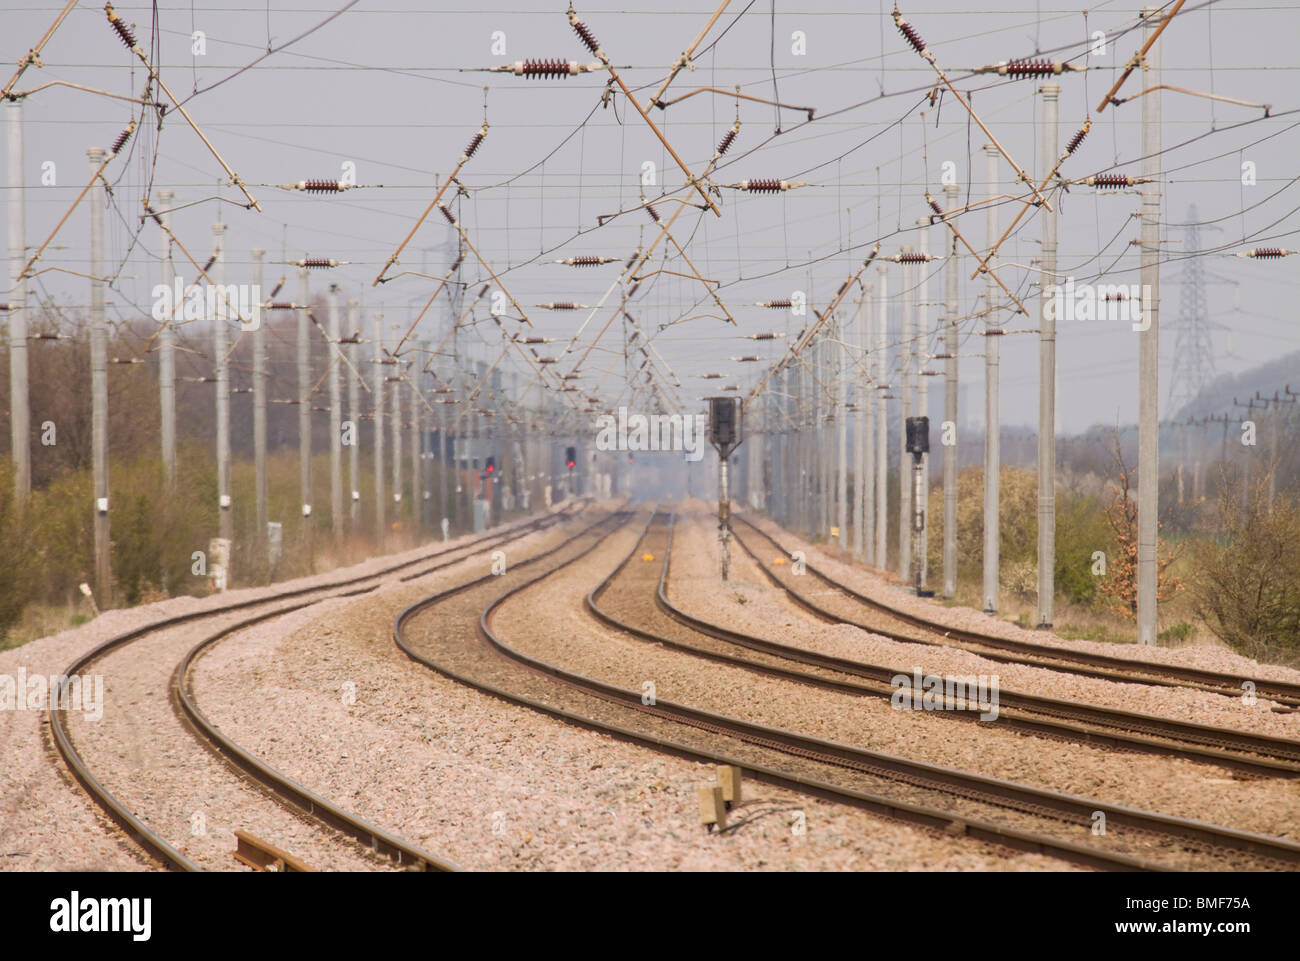 Empty railway tracks and overhead line catenary equipment on a length  of four track railway. Stock Photo